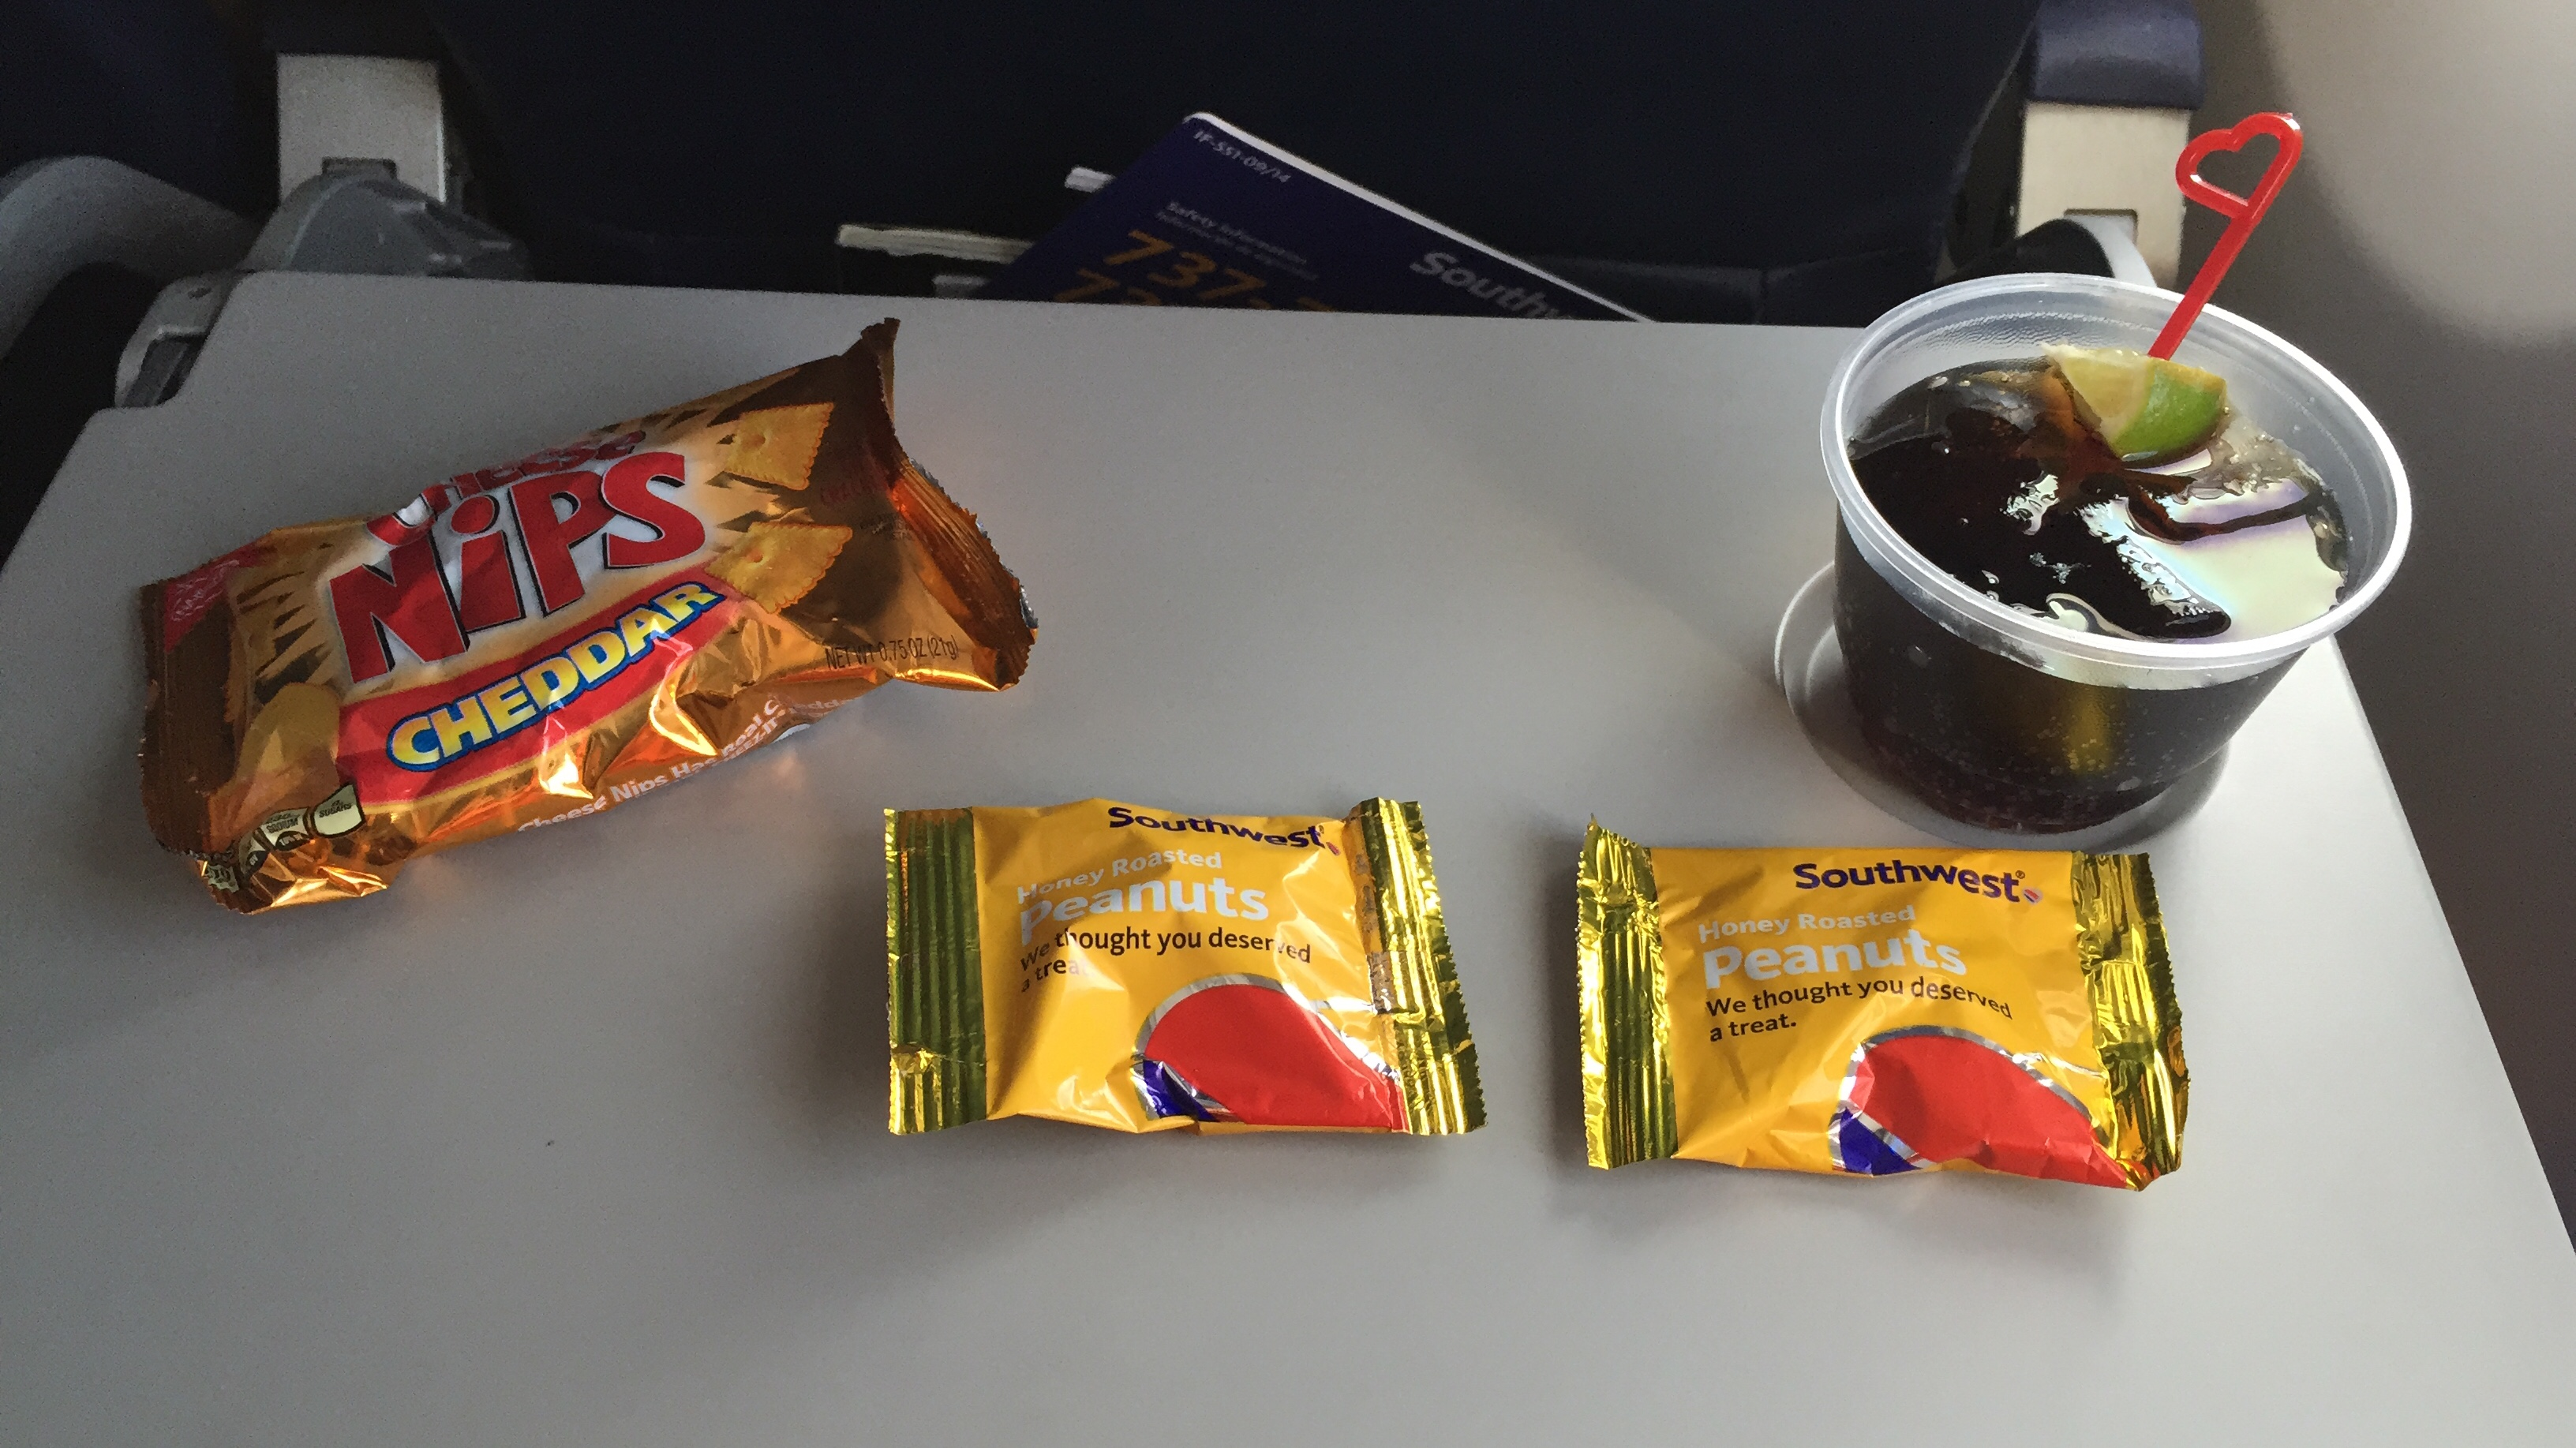 Southwest Airlines Aircraft Boeing 737 800 Economy Cabin Inflight Amenities Beverages Snacks and Drinks Services